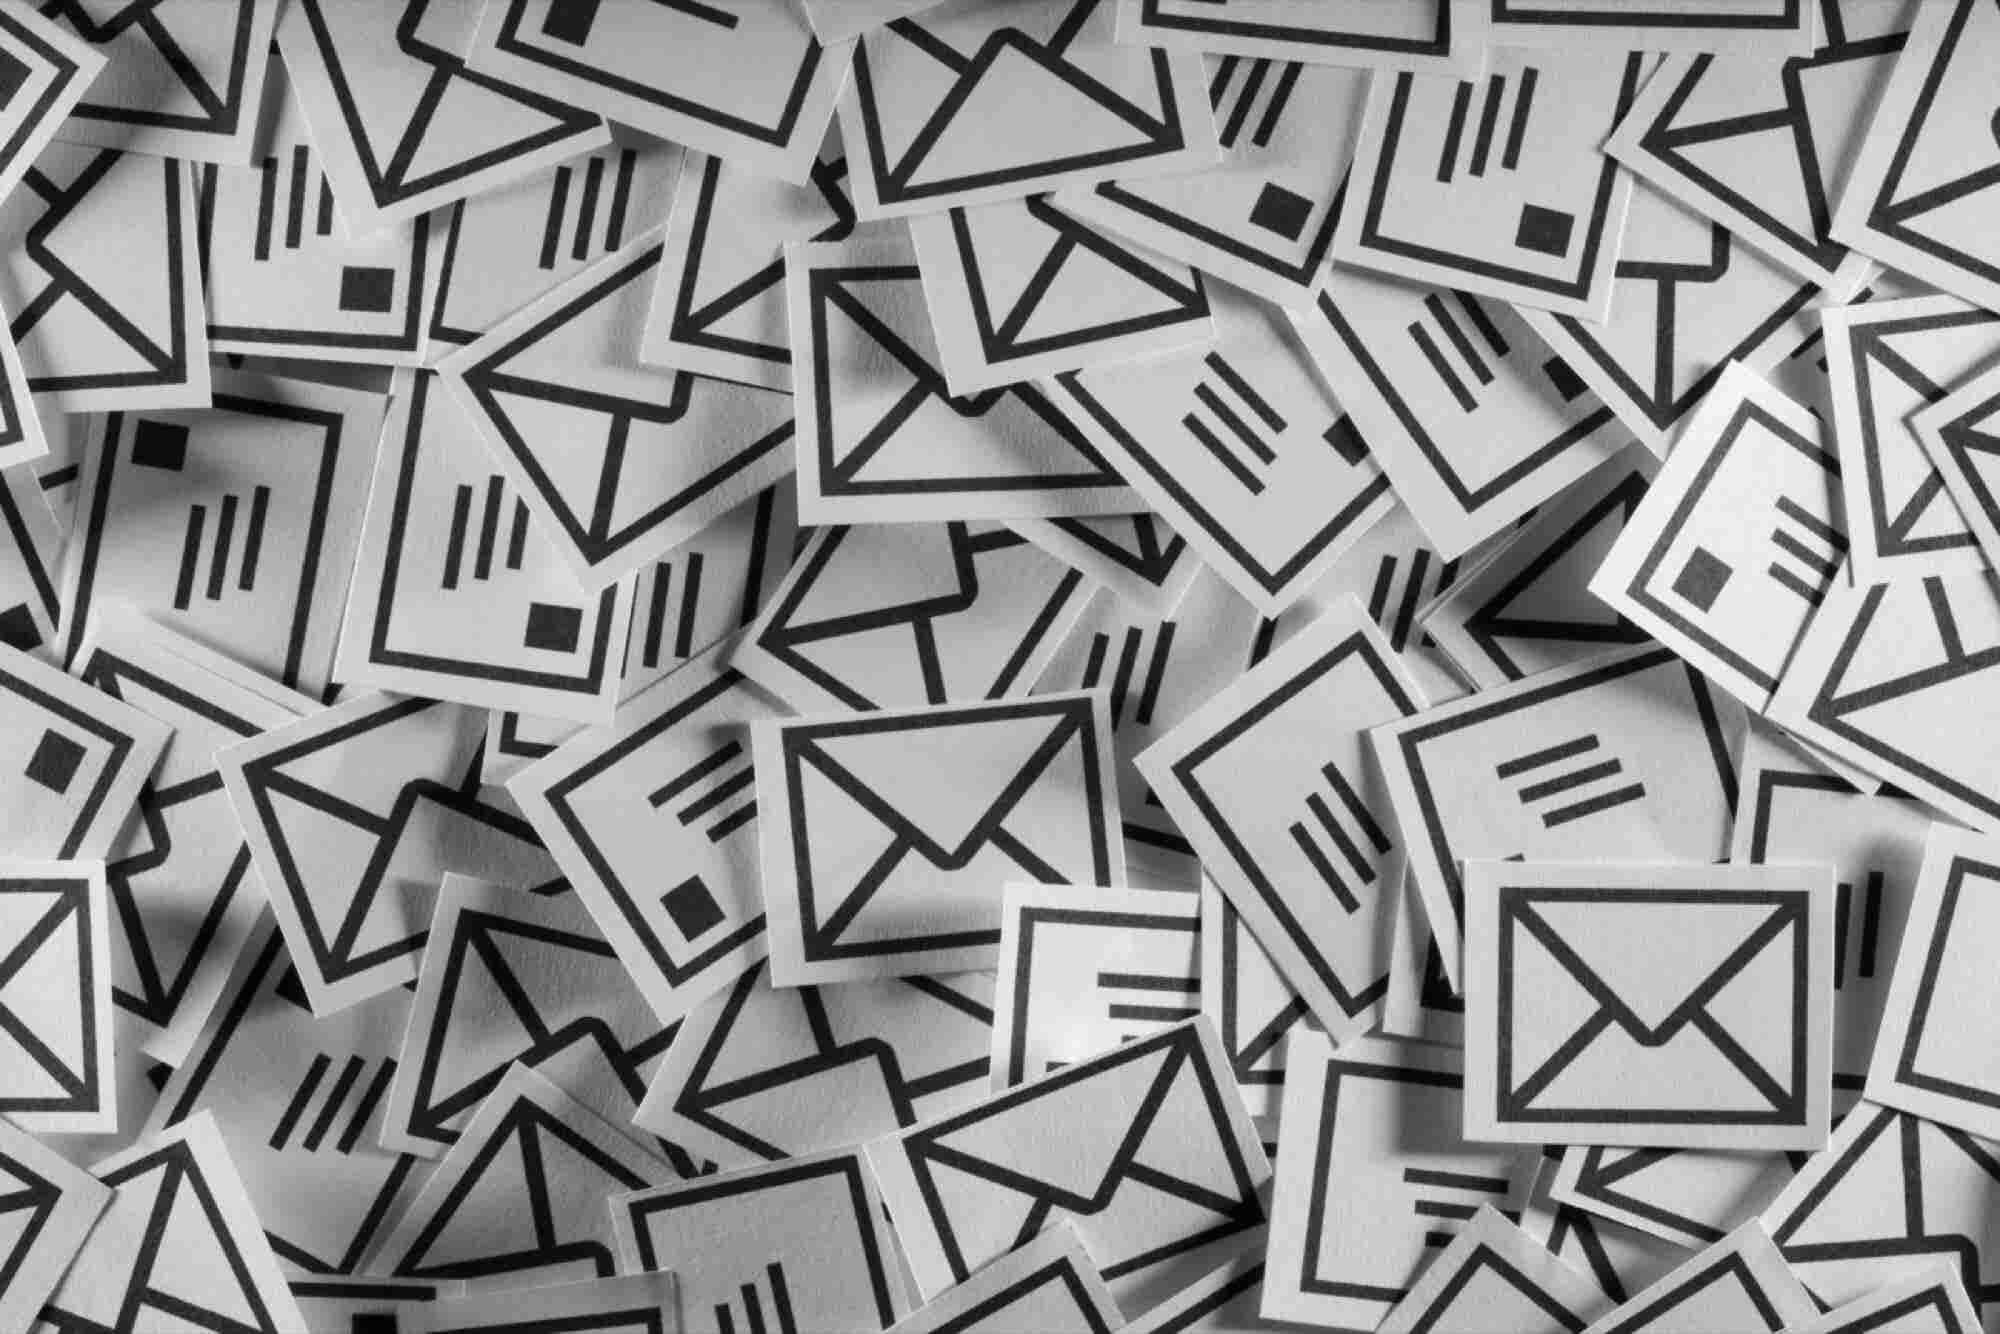 For Spam's 39th Birthday, Here Are Some Things You Never Knew About Mass Email